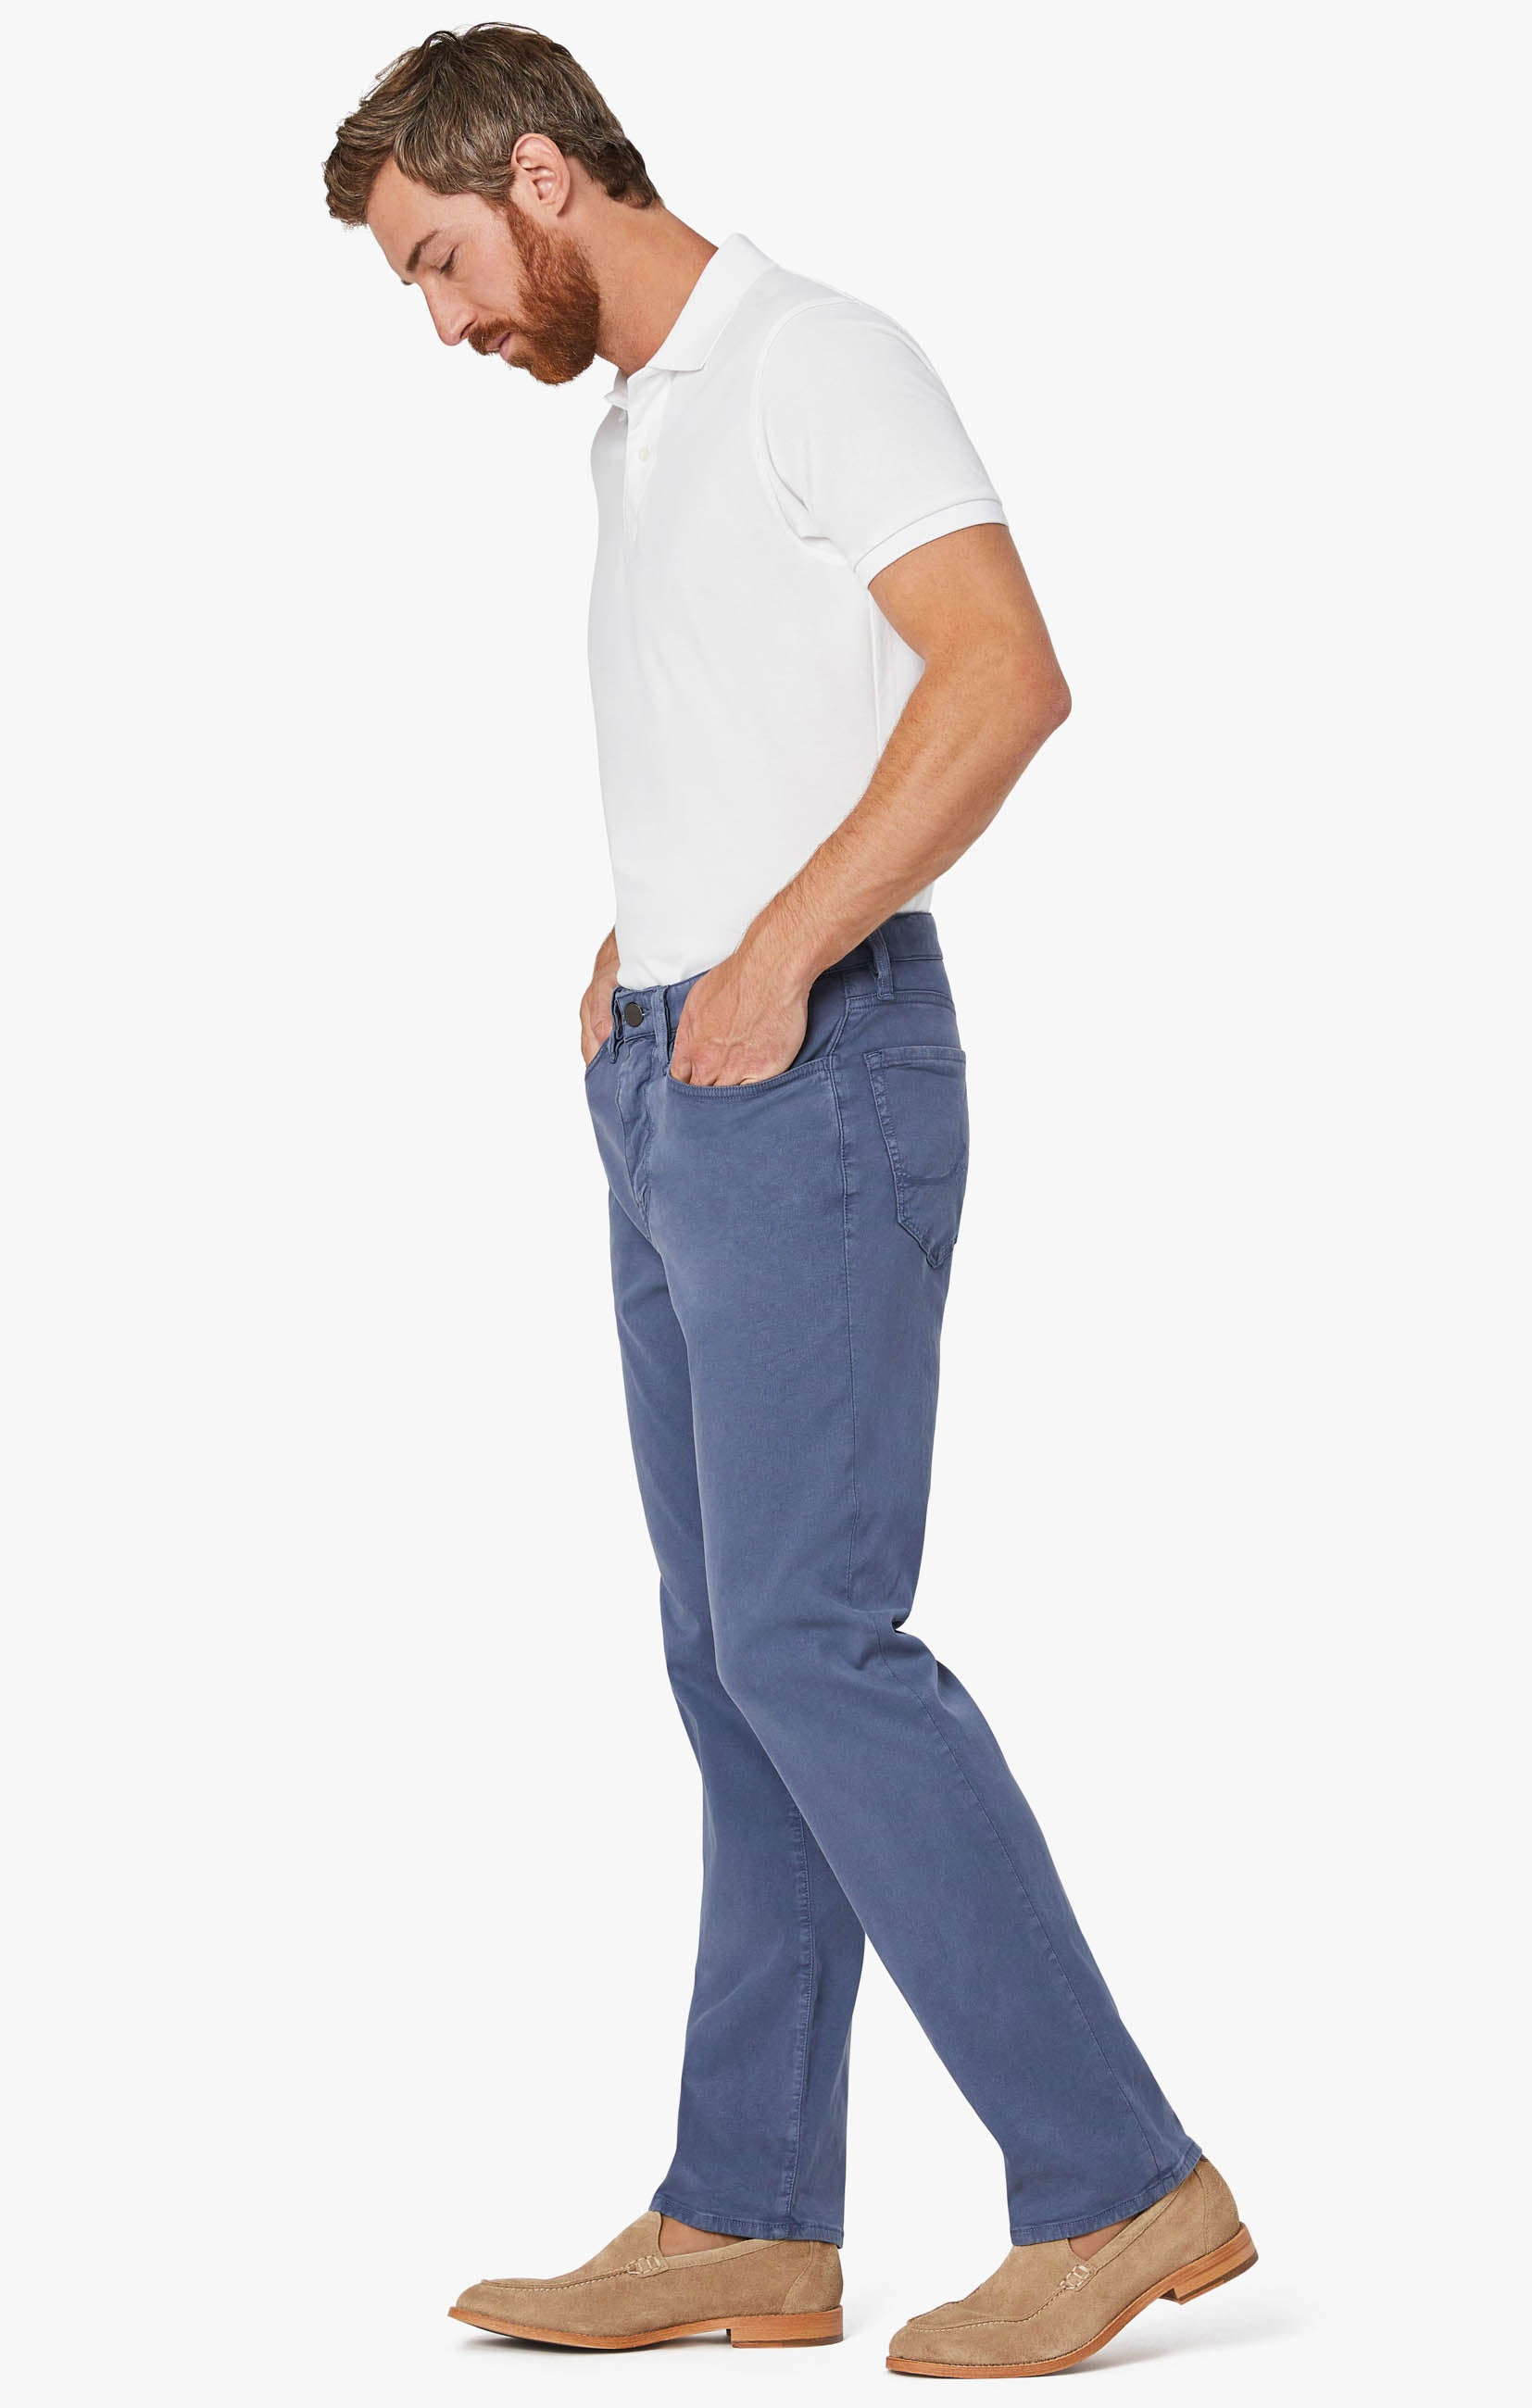 Courage Straight Leg Pants In Horizon Soft Touch Image 3